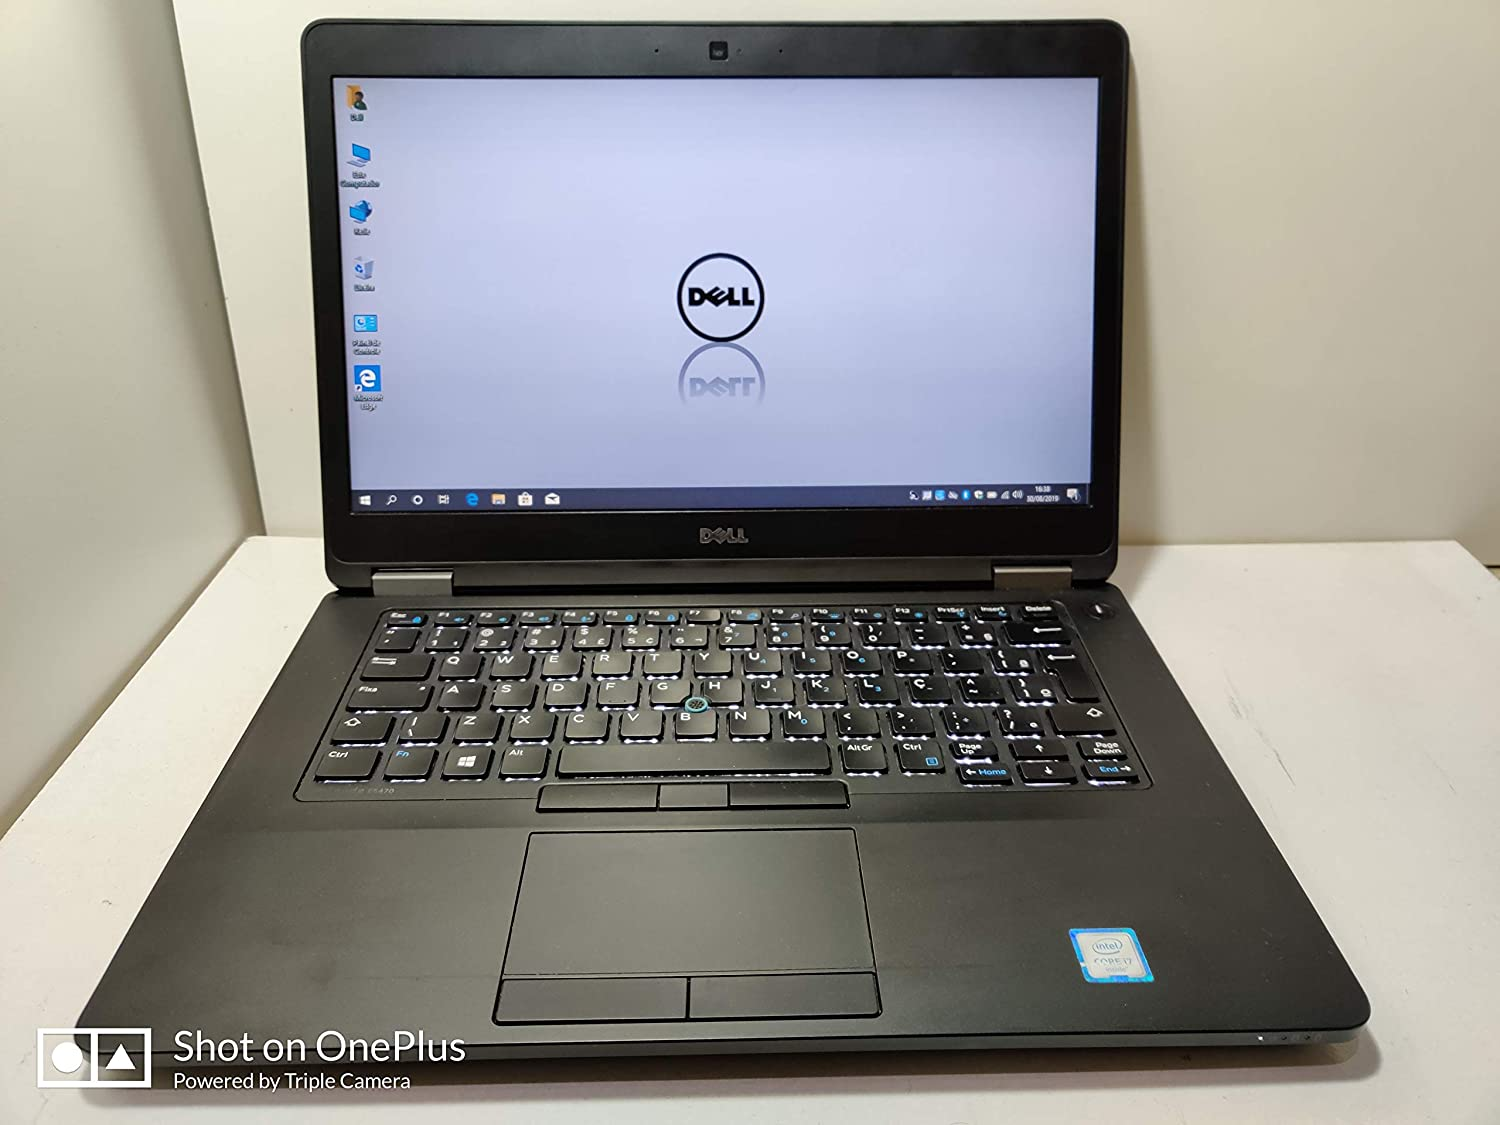 Dell Latitude E5470 Laptop i7-6600U 8GB 256GB SSD Windows 10 Pro